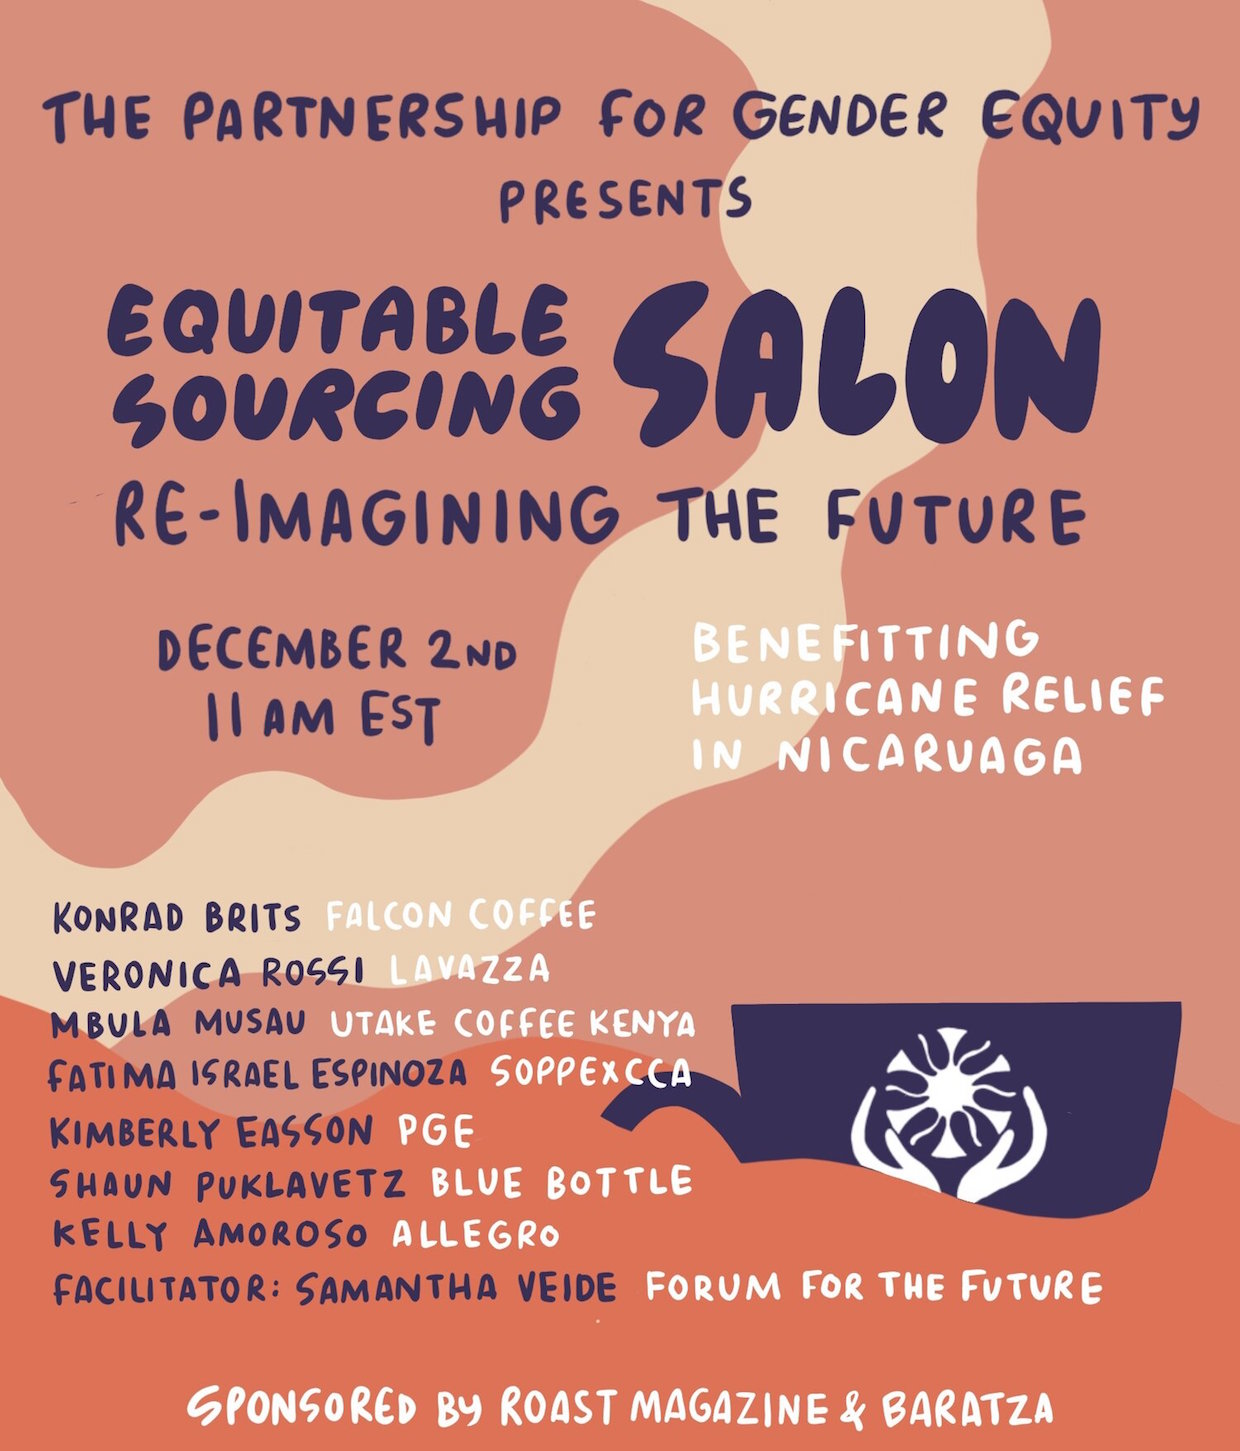 Partnership for Gender Equity Equitable Sourcing Salon